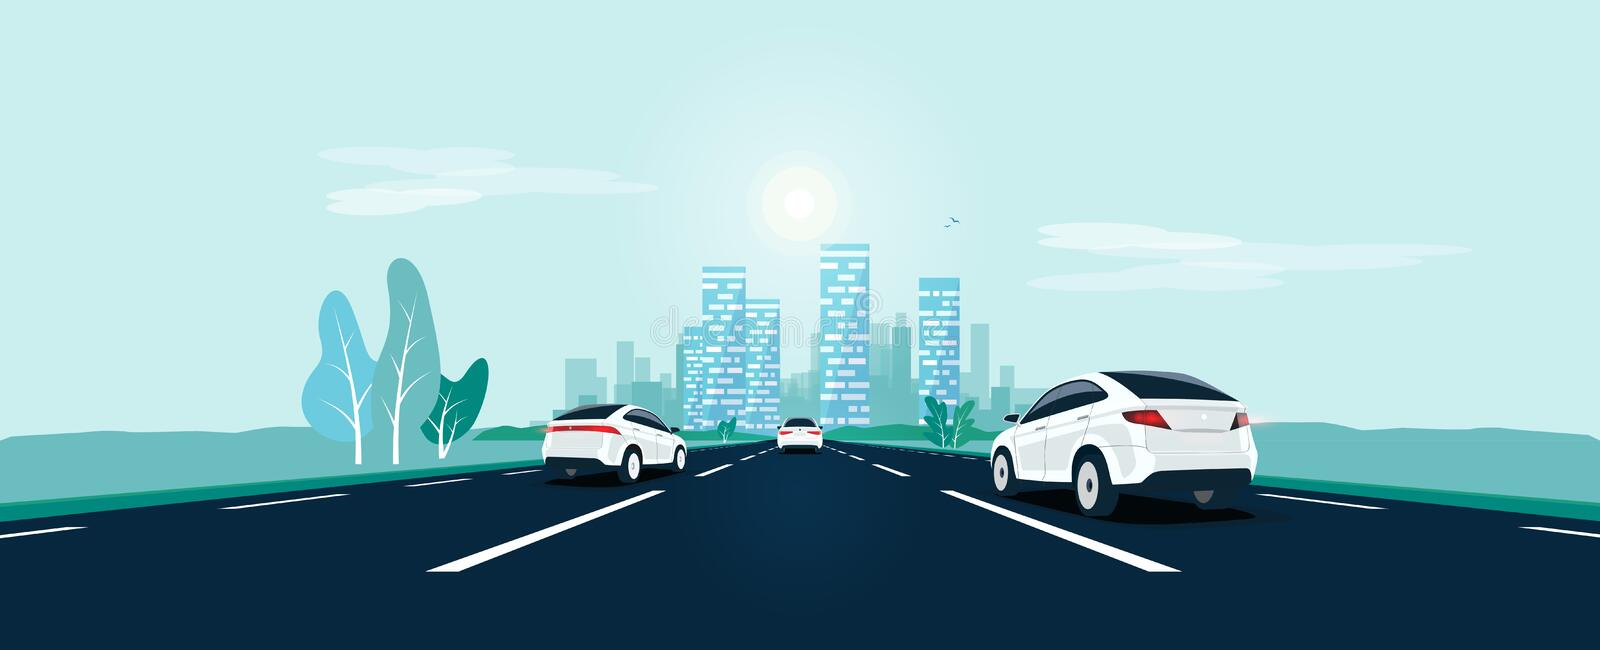 Traffic on the Toad Perspective Horizon Vanishing Point View with City Skyline vector illustration